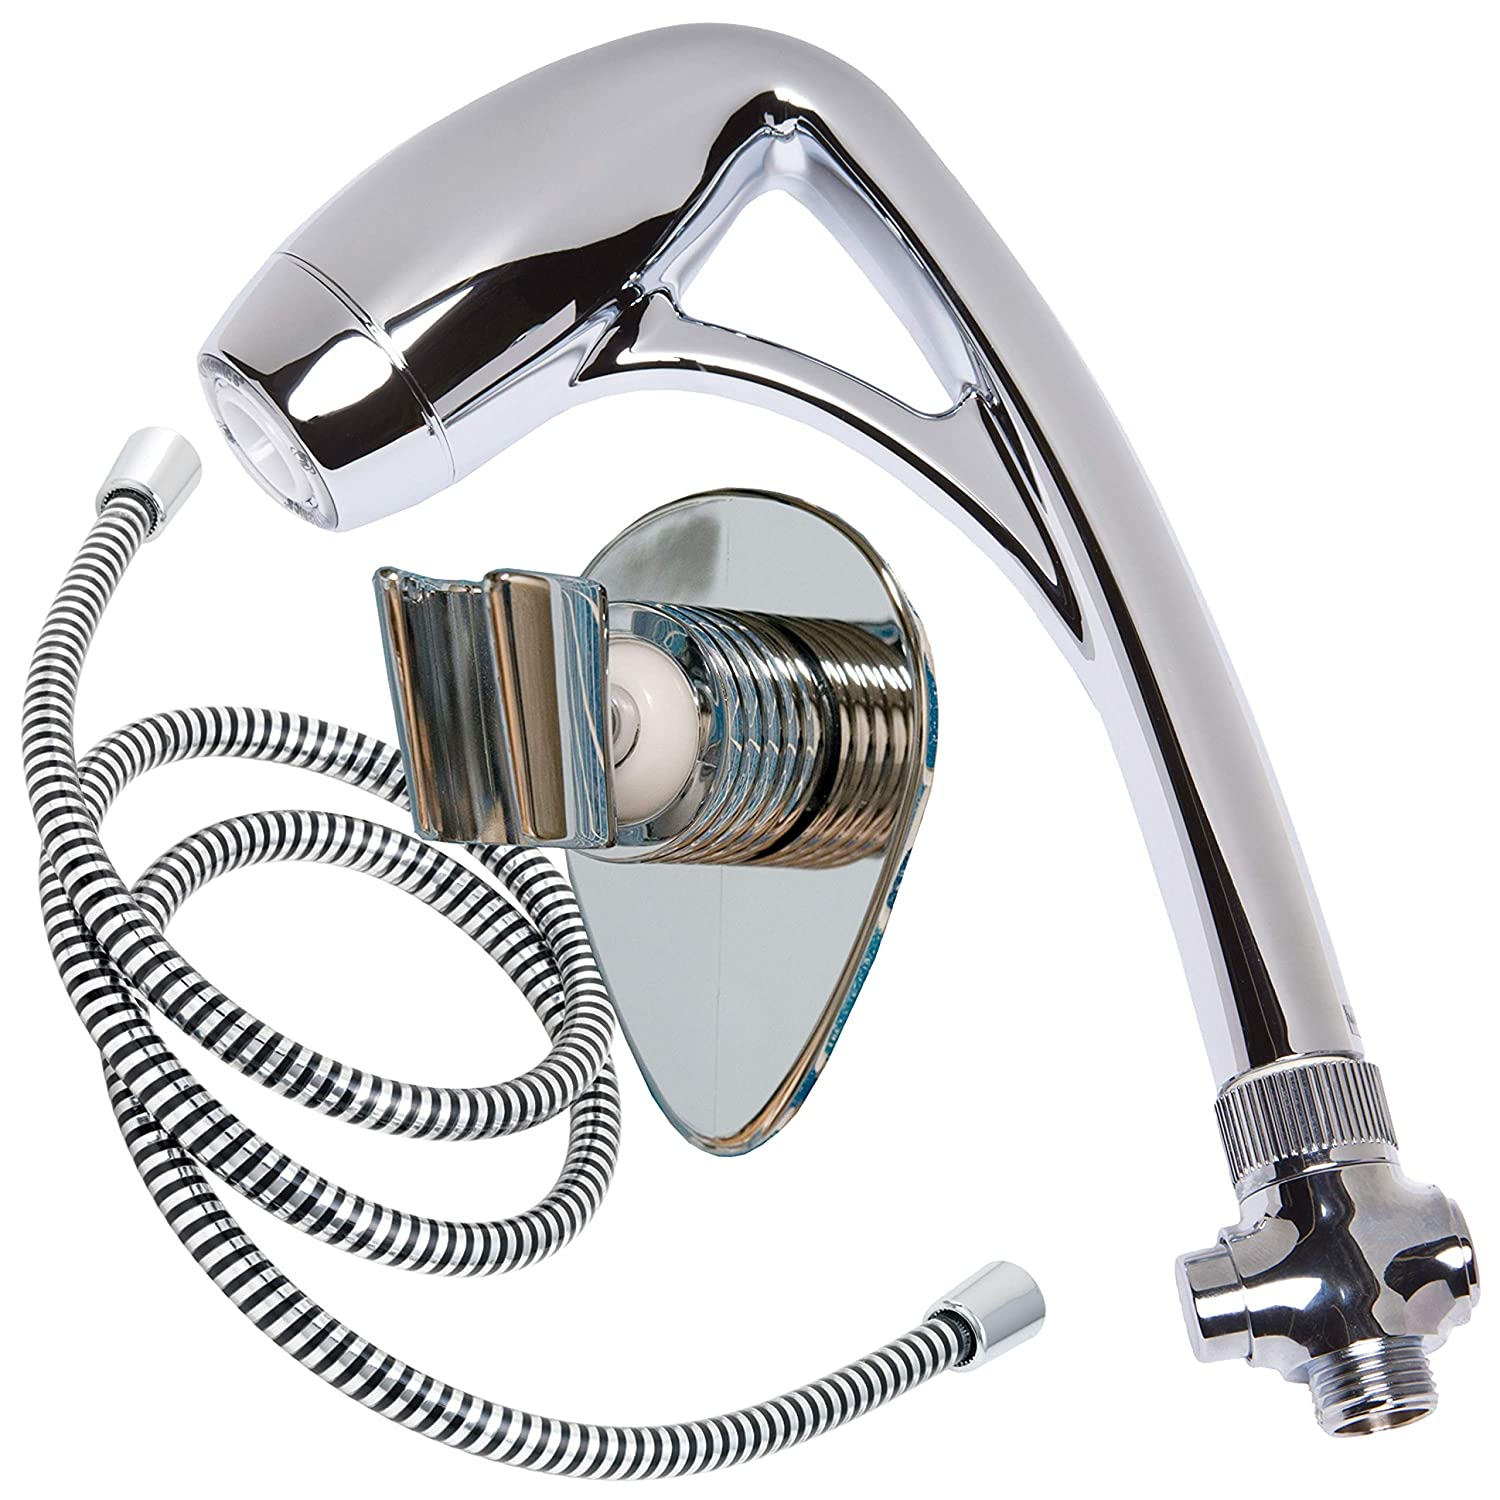 "ETL 26181 Plastic Body Spa Oxygenics Shower with 60"" Hose"